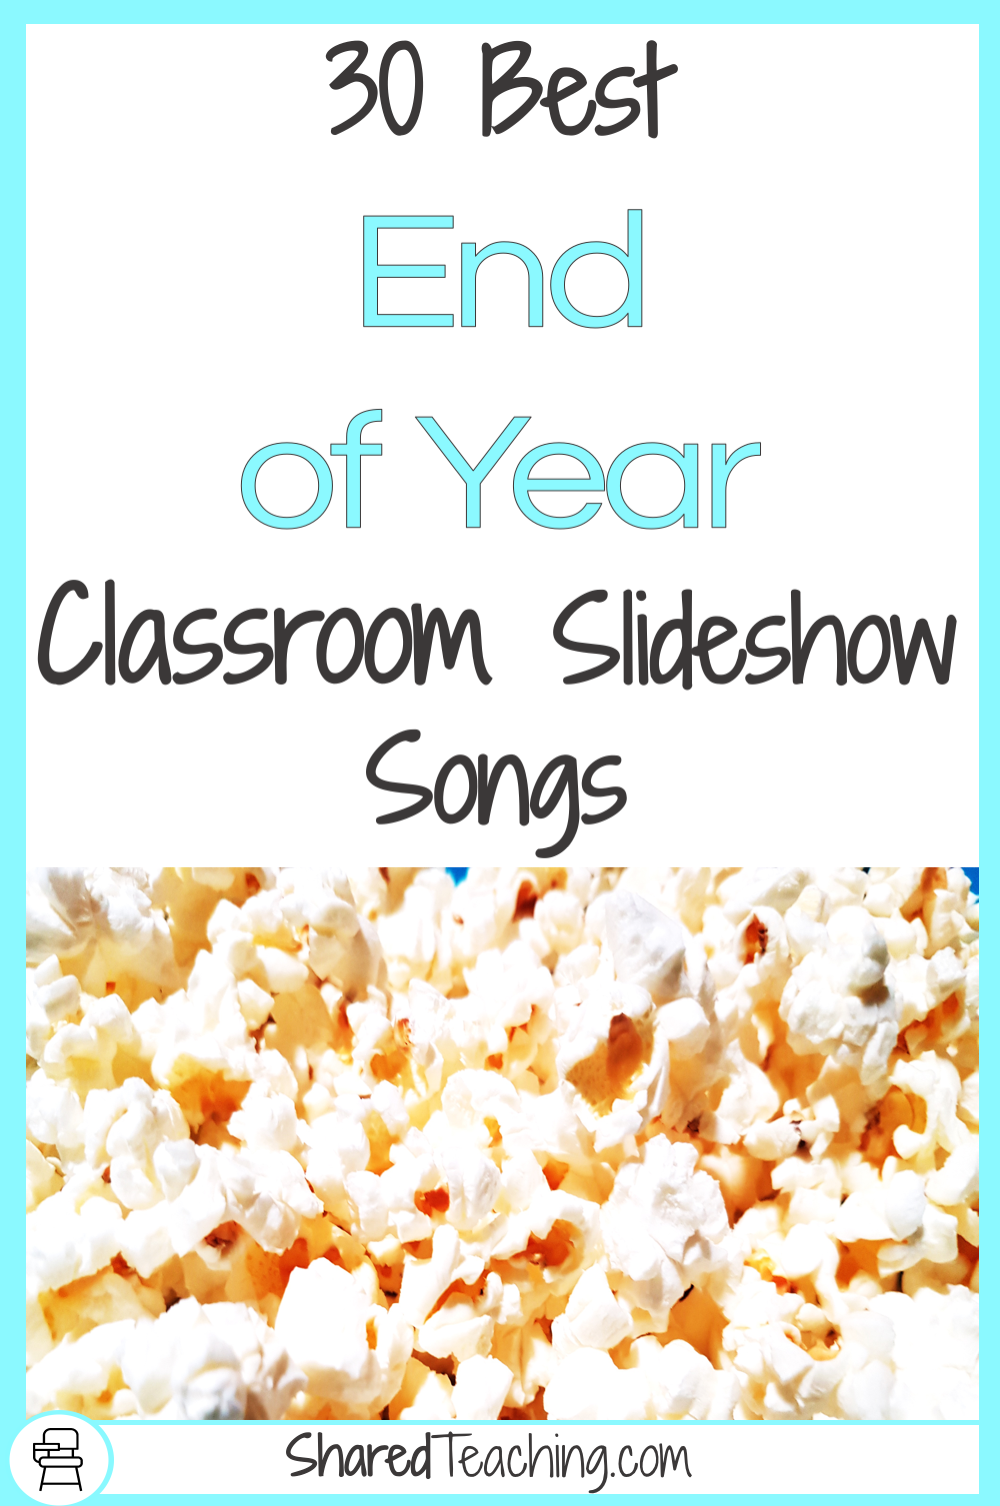 Need help for choosing a song for your end of the year classroom slideshow? Click here to learn 30 of my favorites!